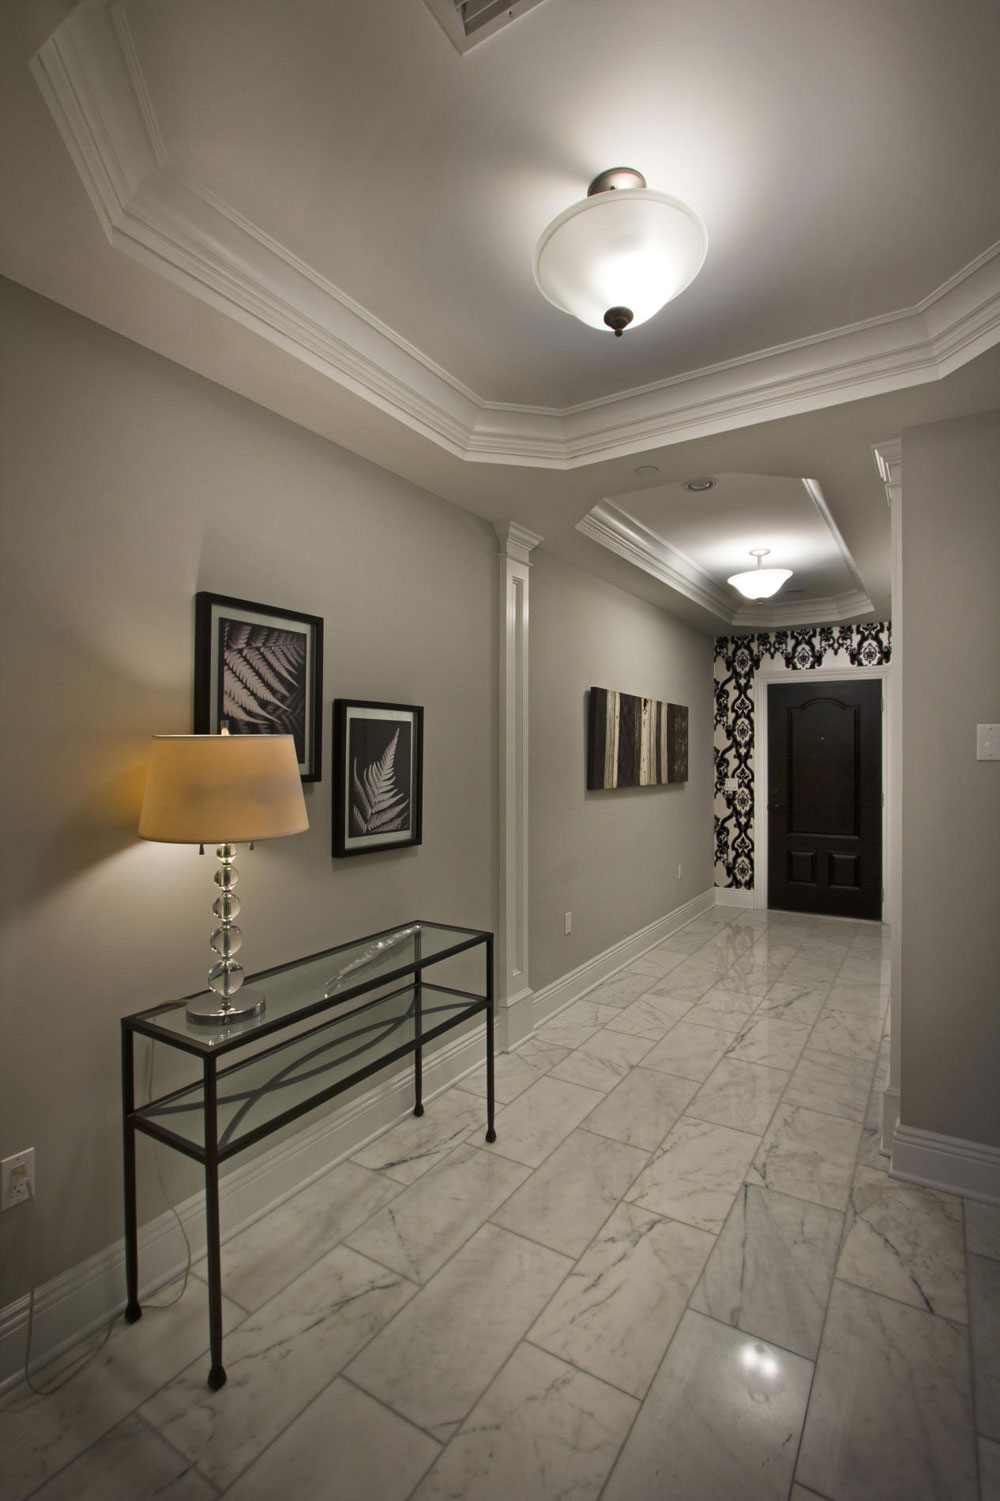 Warm Your Day With These Hallway Decorating Ideas-11 Warm up Your Day With These Hallway Decorating Ideas